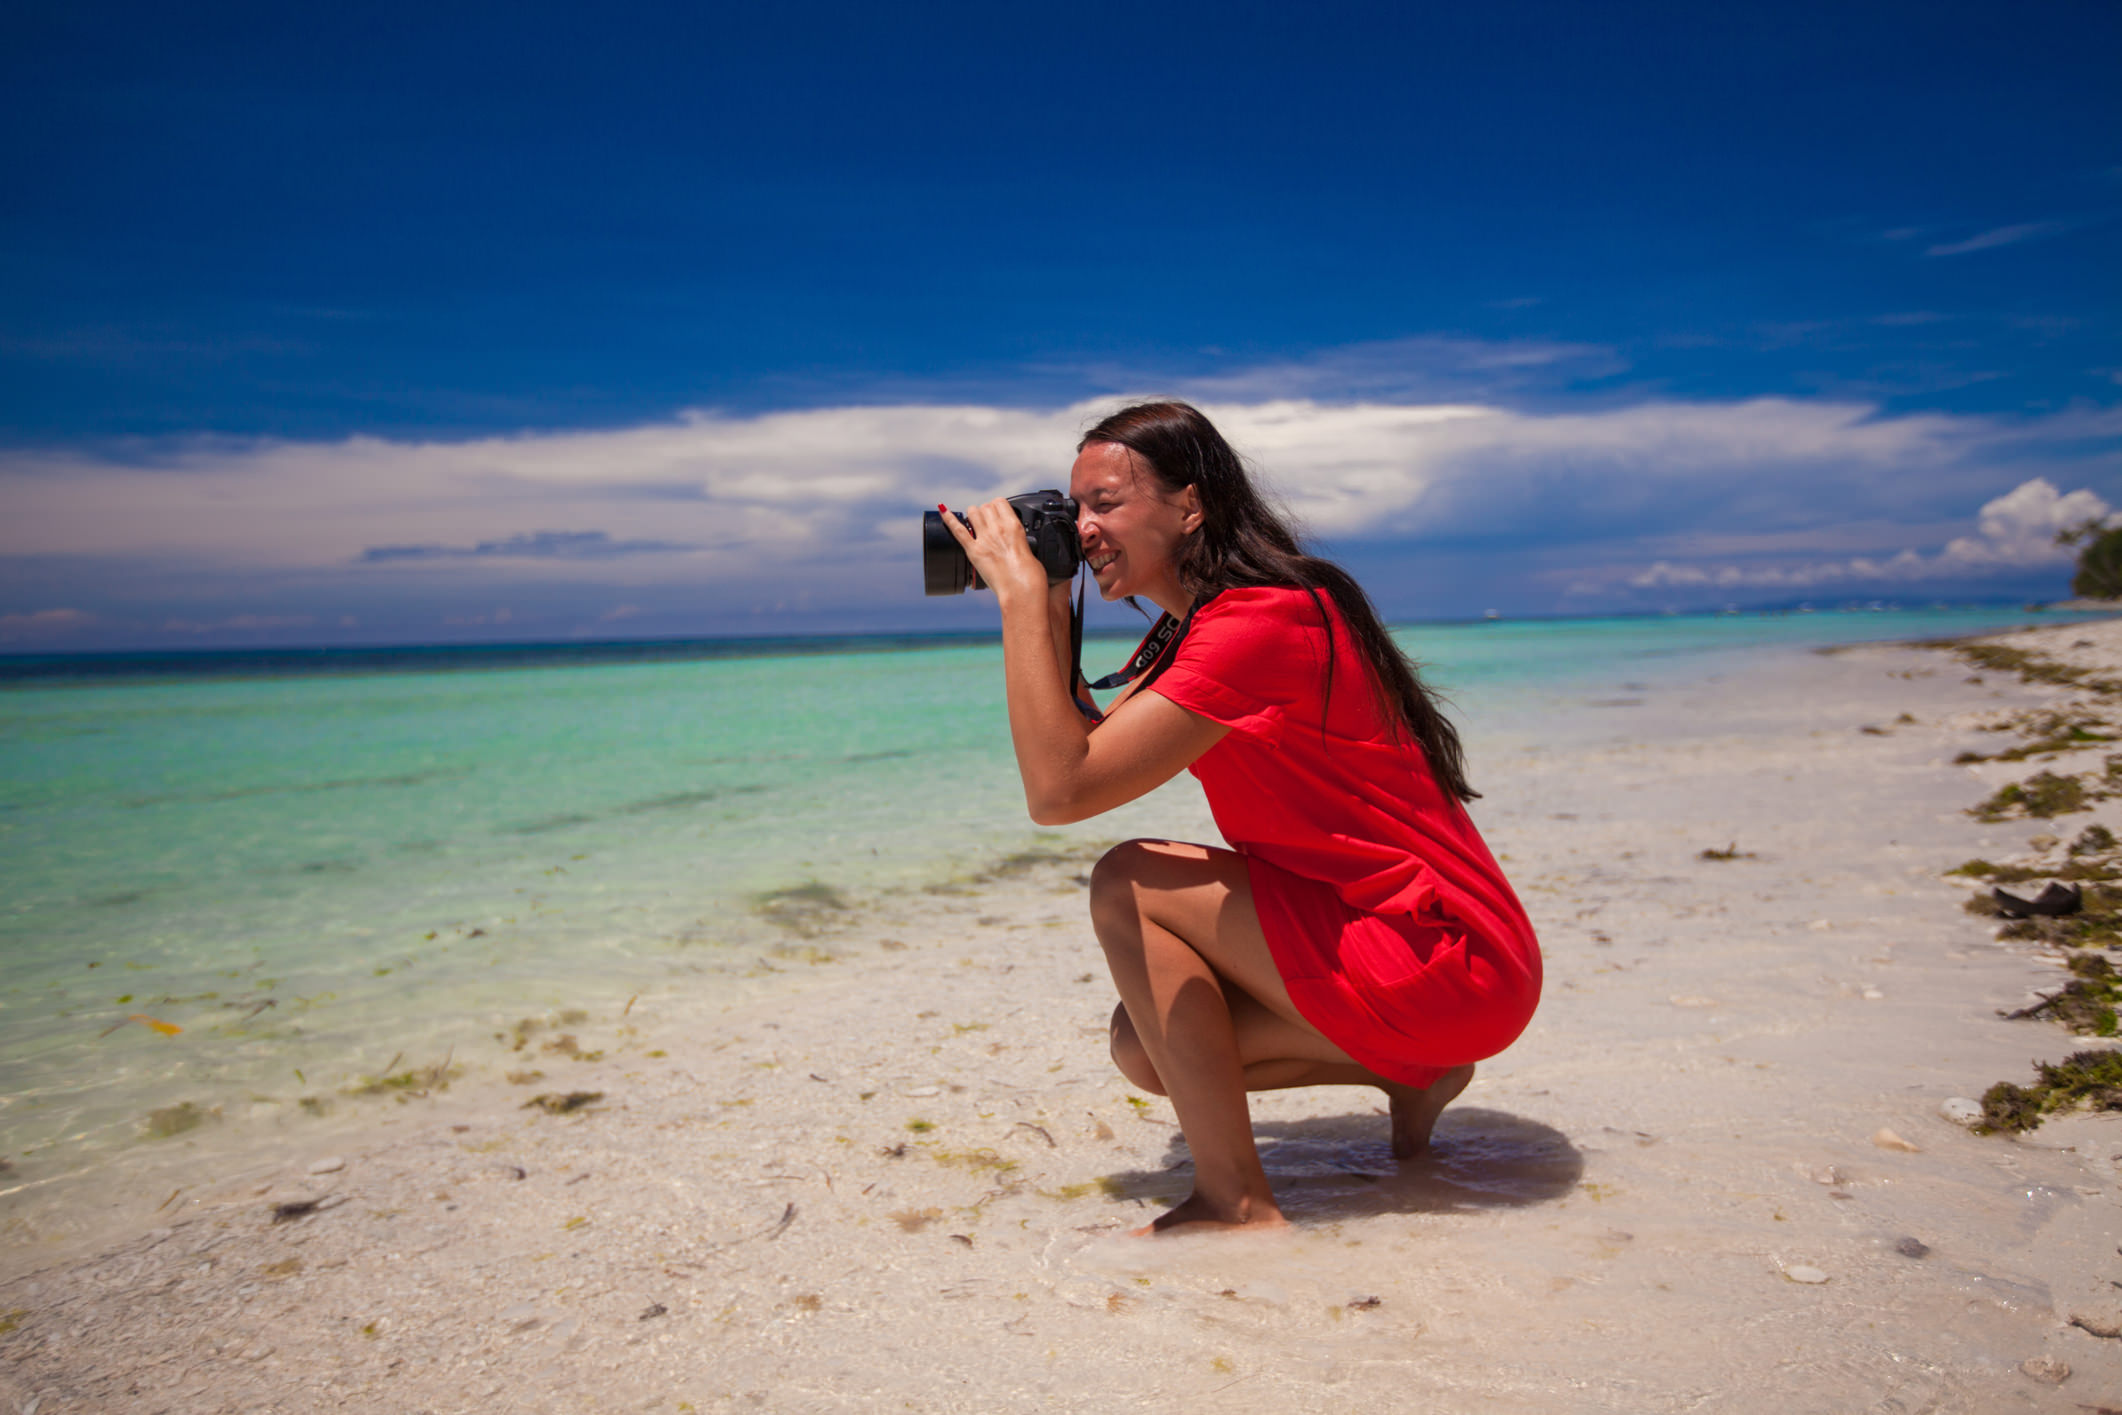 Woman on beach with camera image